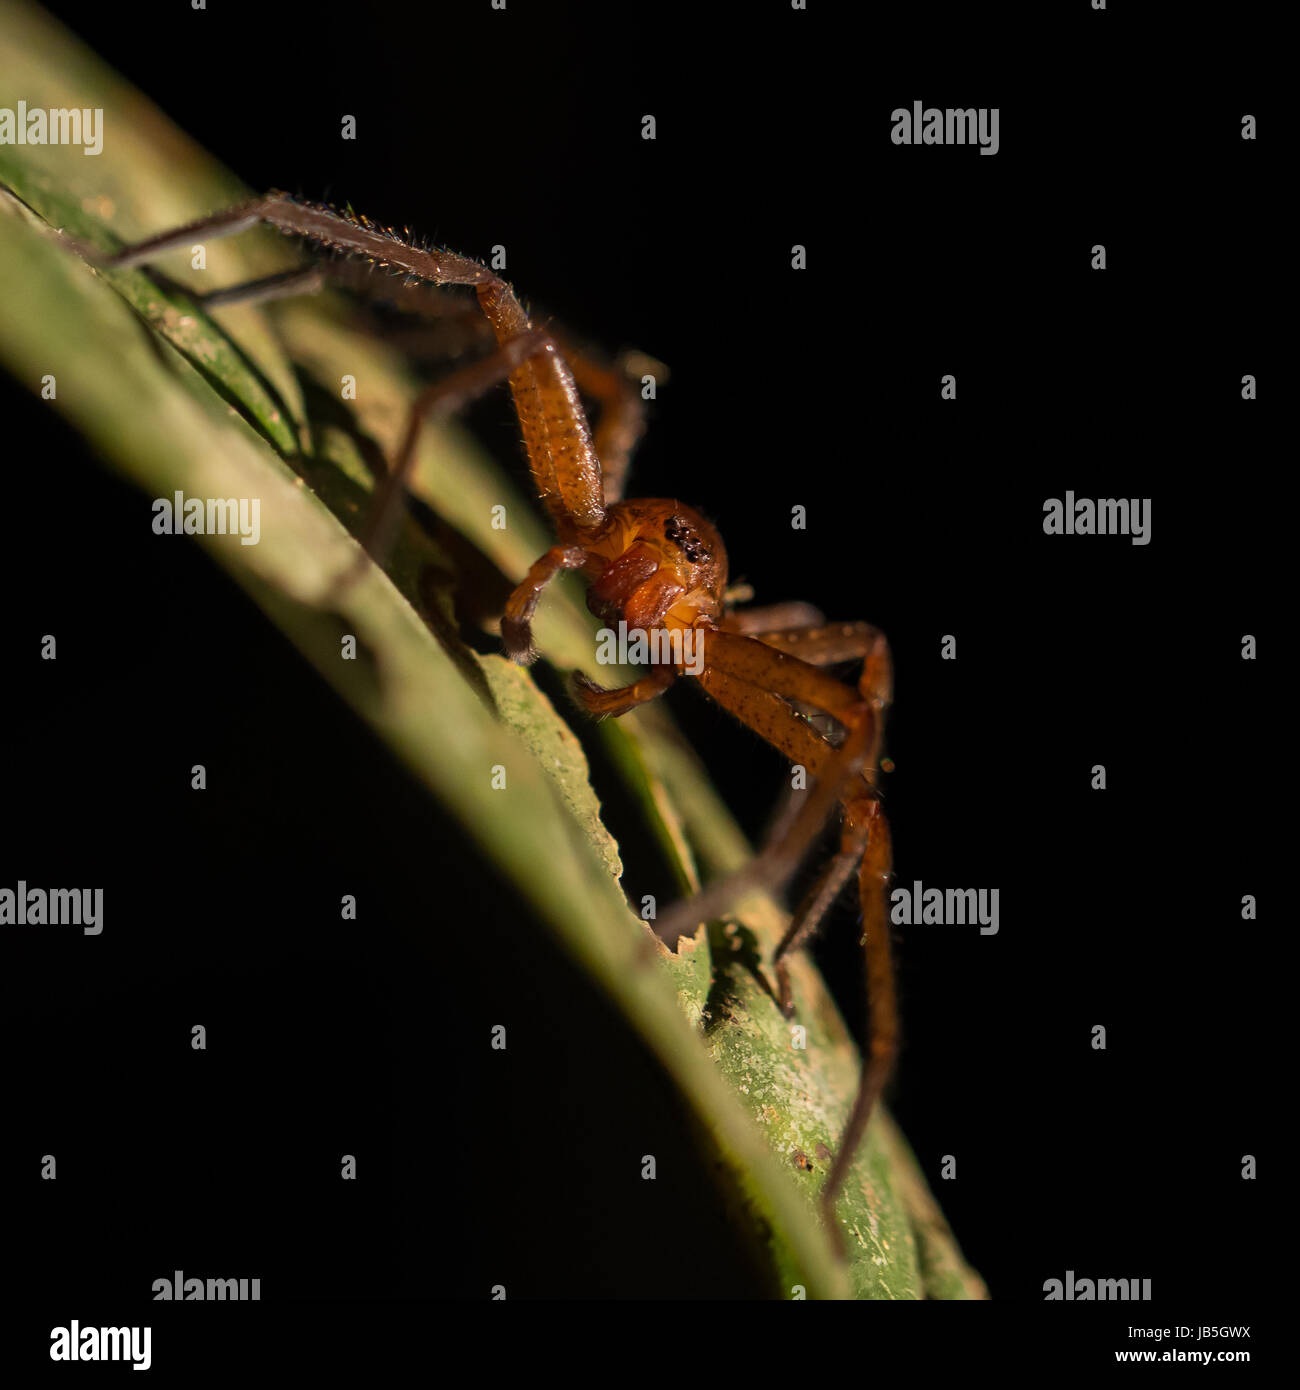 Spider resting on a leaf at night in Ulu Temburong National Park, Temburong District, Brunei - Stock Image